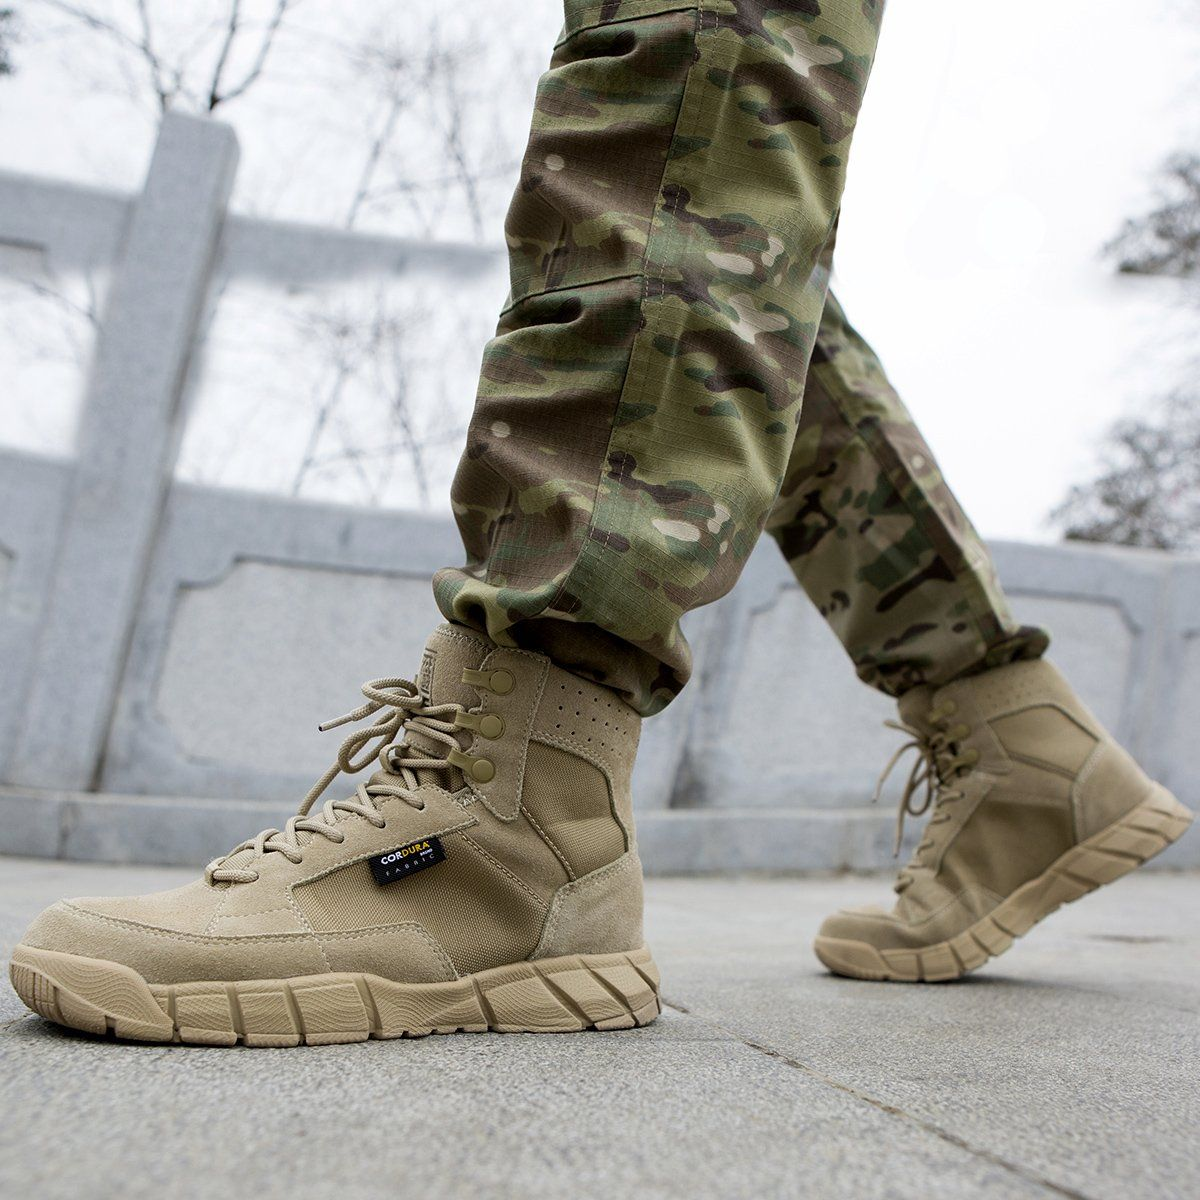 FREE SOLDIER Mens Work Boots 6 inch Lightweight Breathable Military Tactical Desert Boots for Hiking